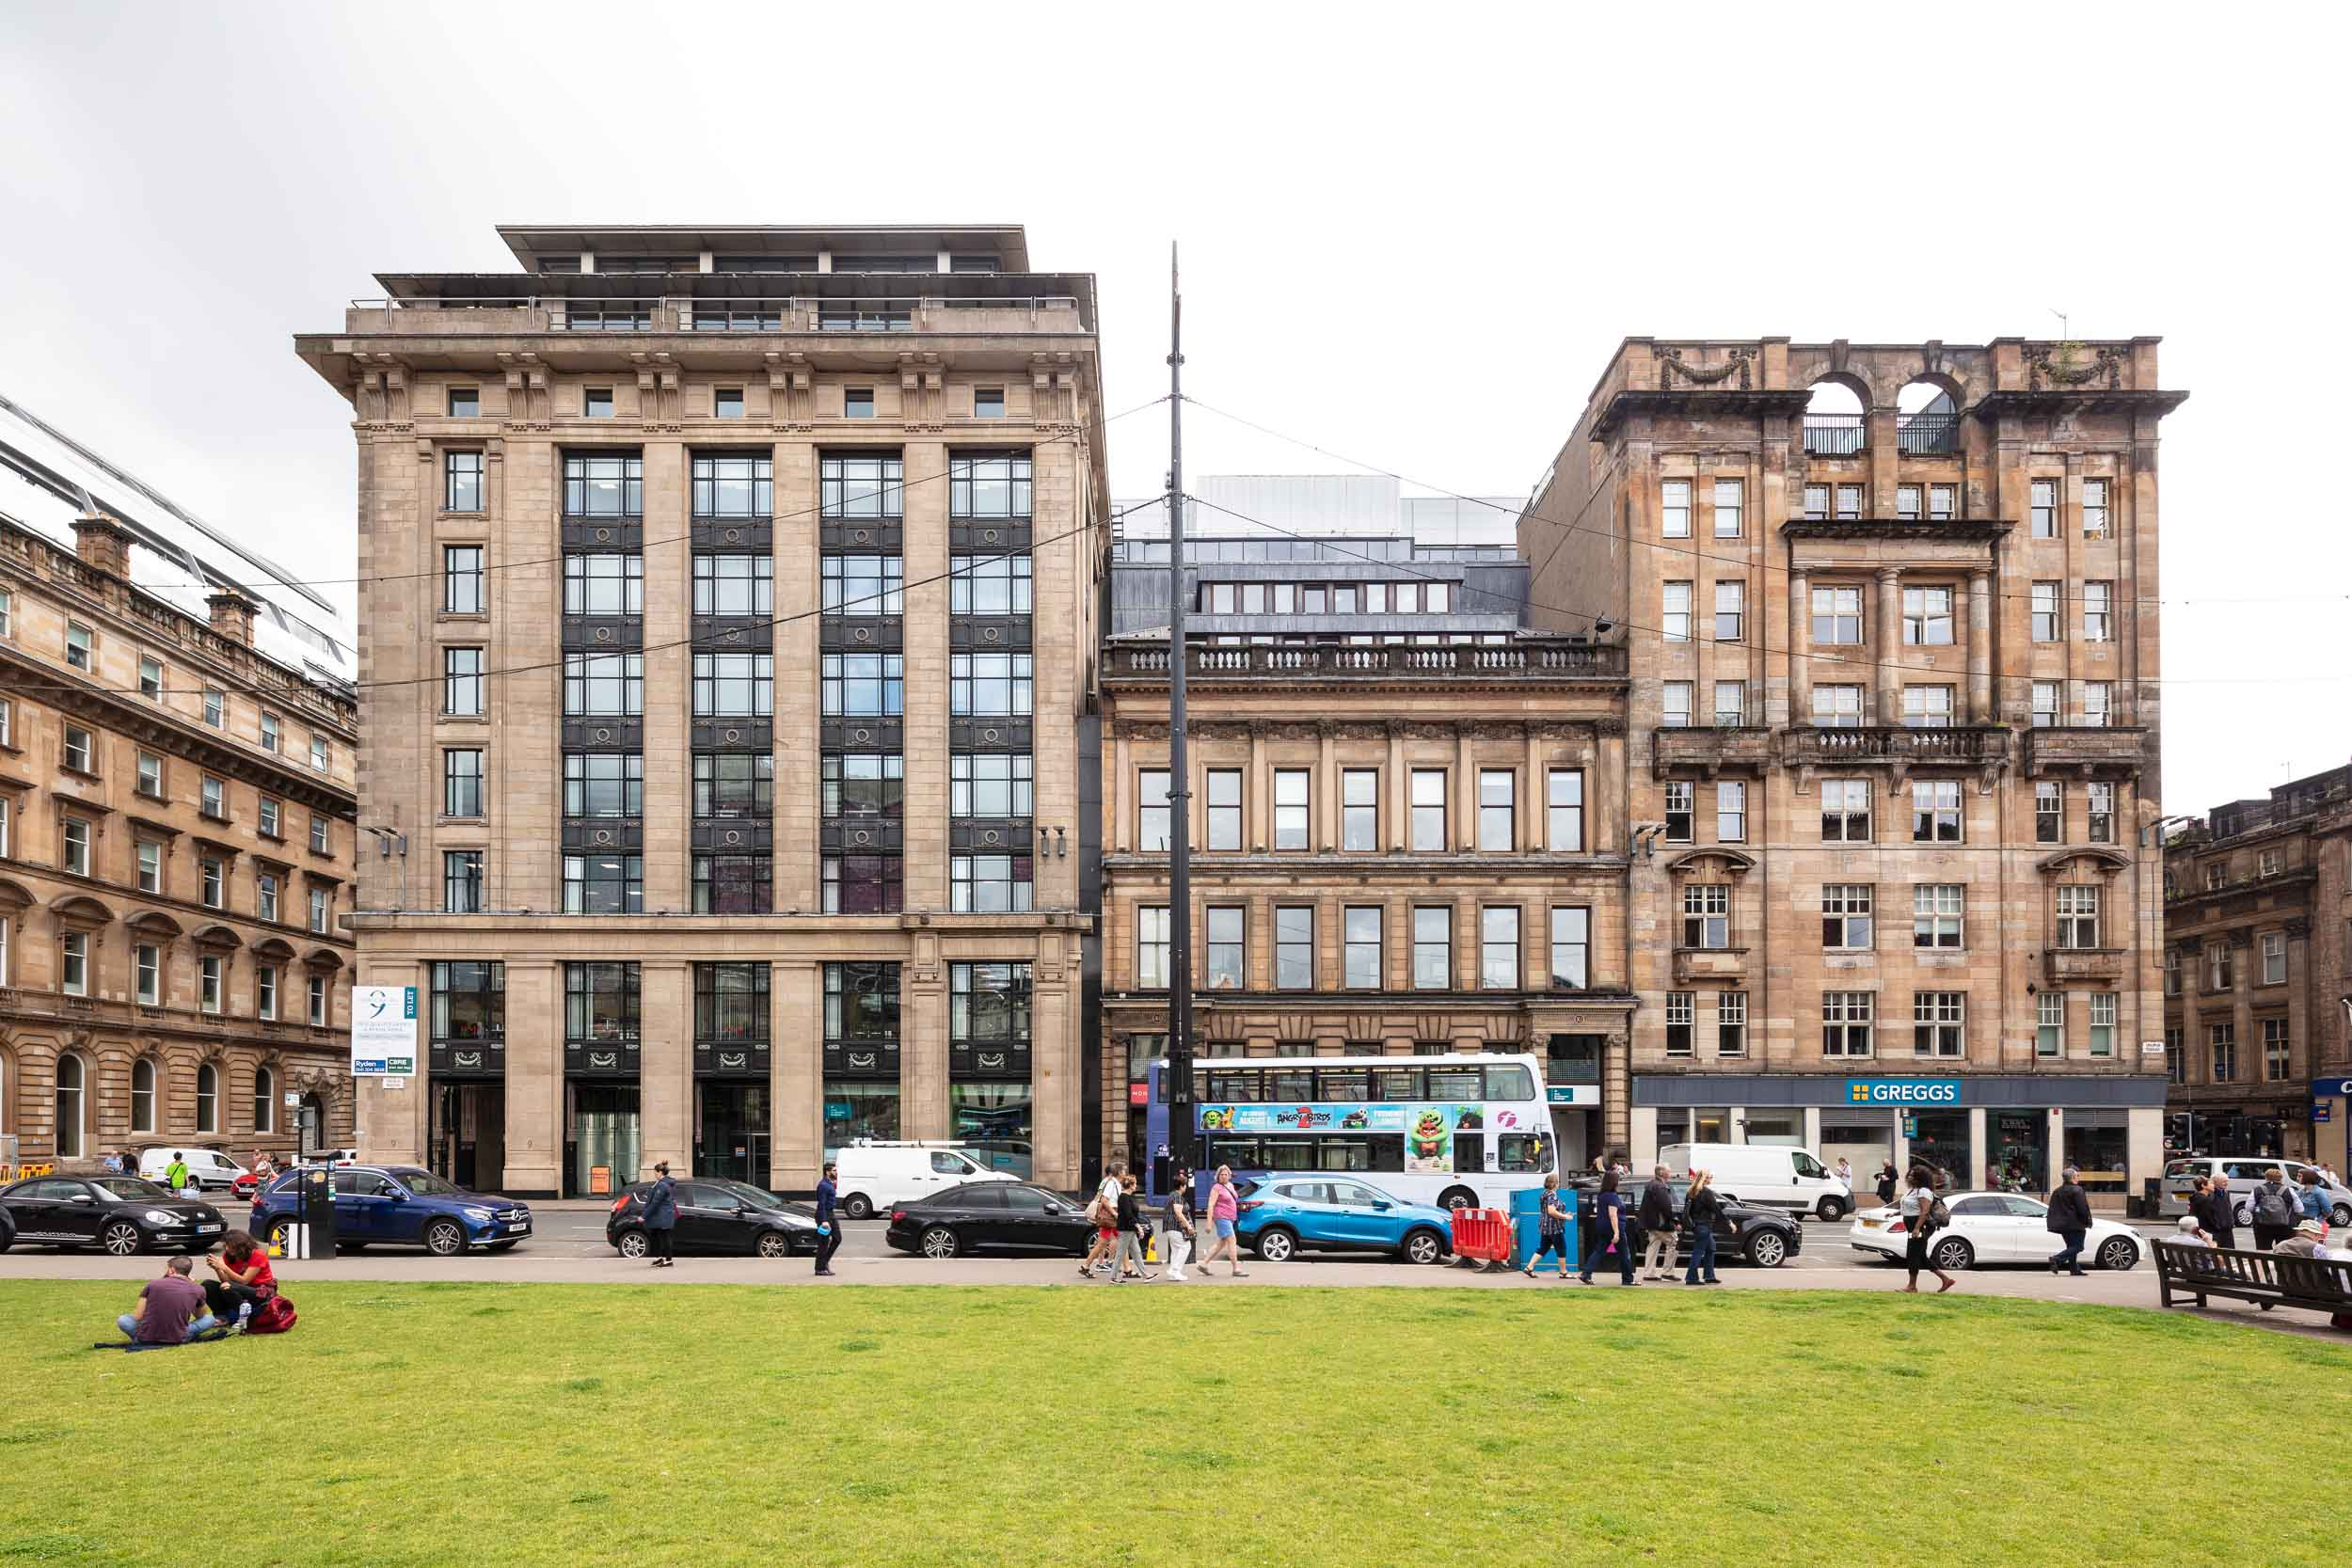 9 George Square is primely located in the heart of Glasgow's CBD. Adjacent to the City Chambers, immediate to Queen Street railway station and a few minutes walk from Glasgow Central station, Buchanan Street shopping, restaurant and leisure amenities and the Subway.